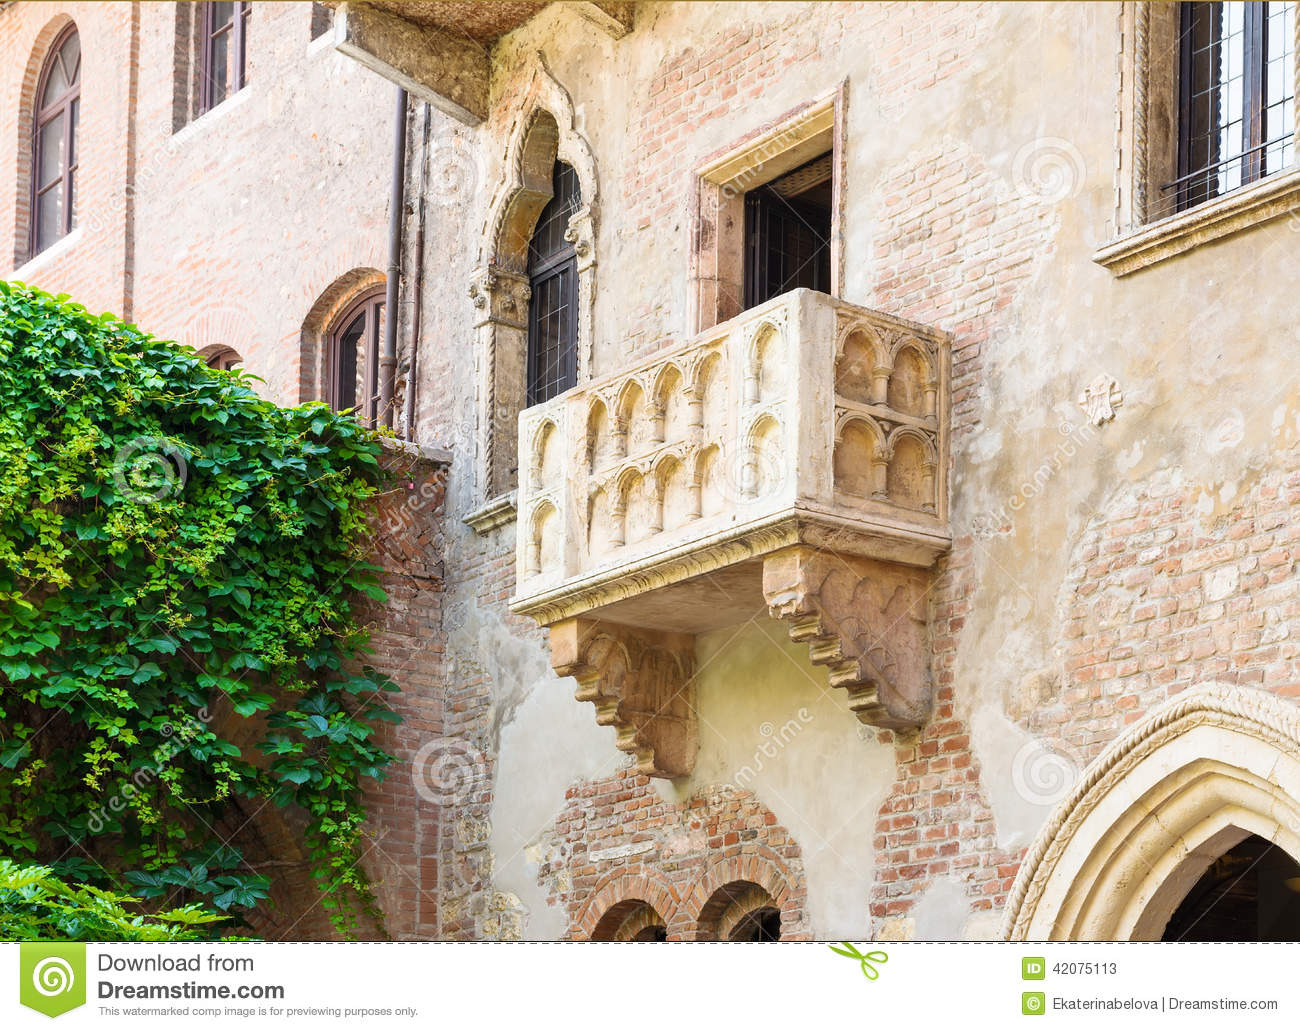 The famous balcony of juliet capulet home in verona stock for Famous balcony